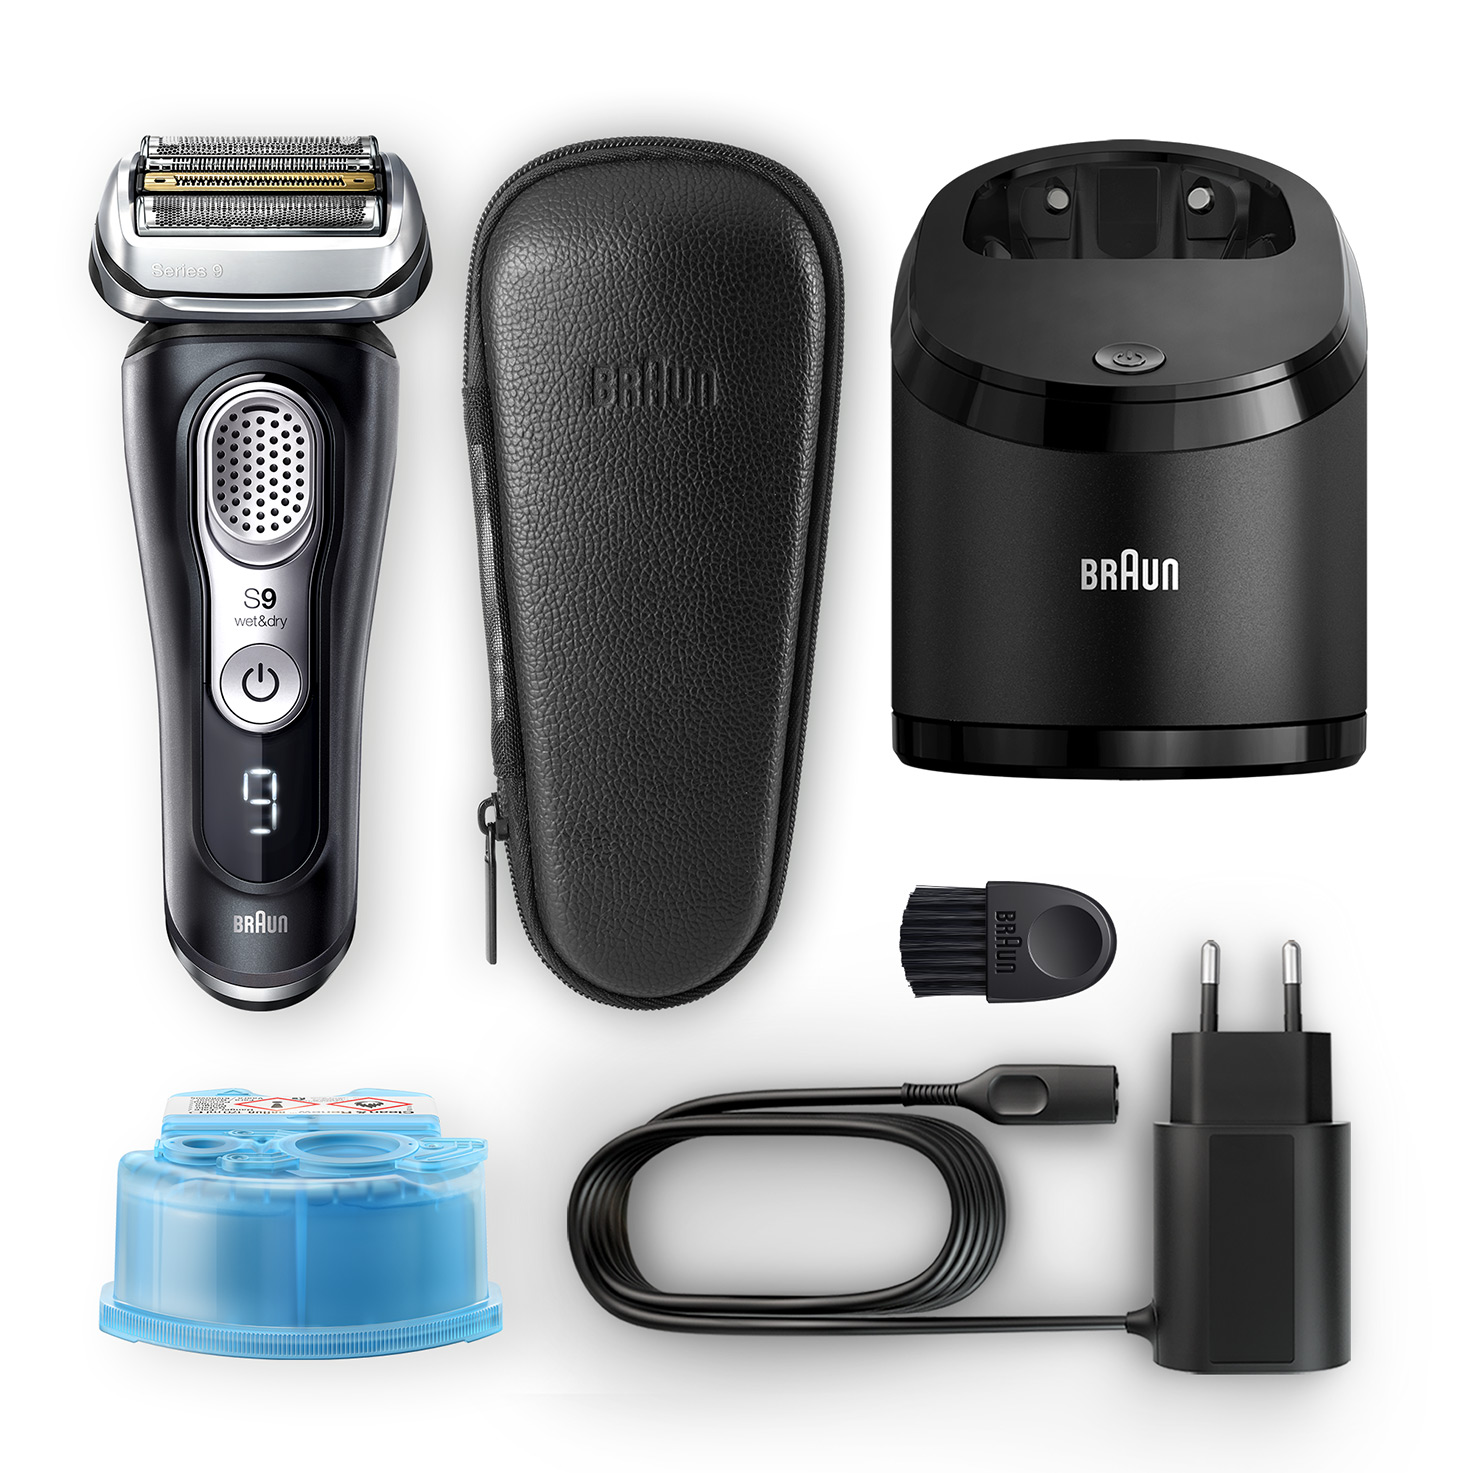 Series 9 9380cc shaver - What´s in the box